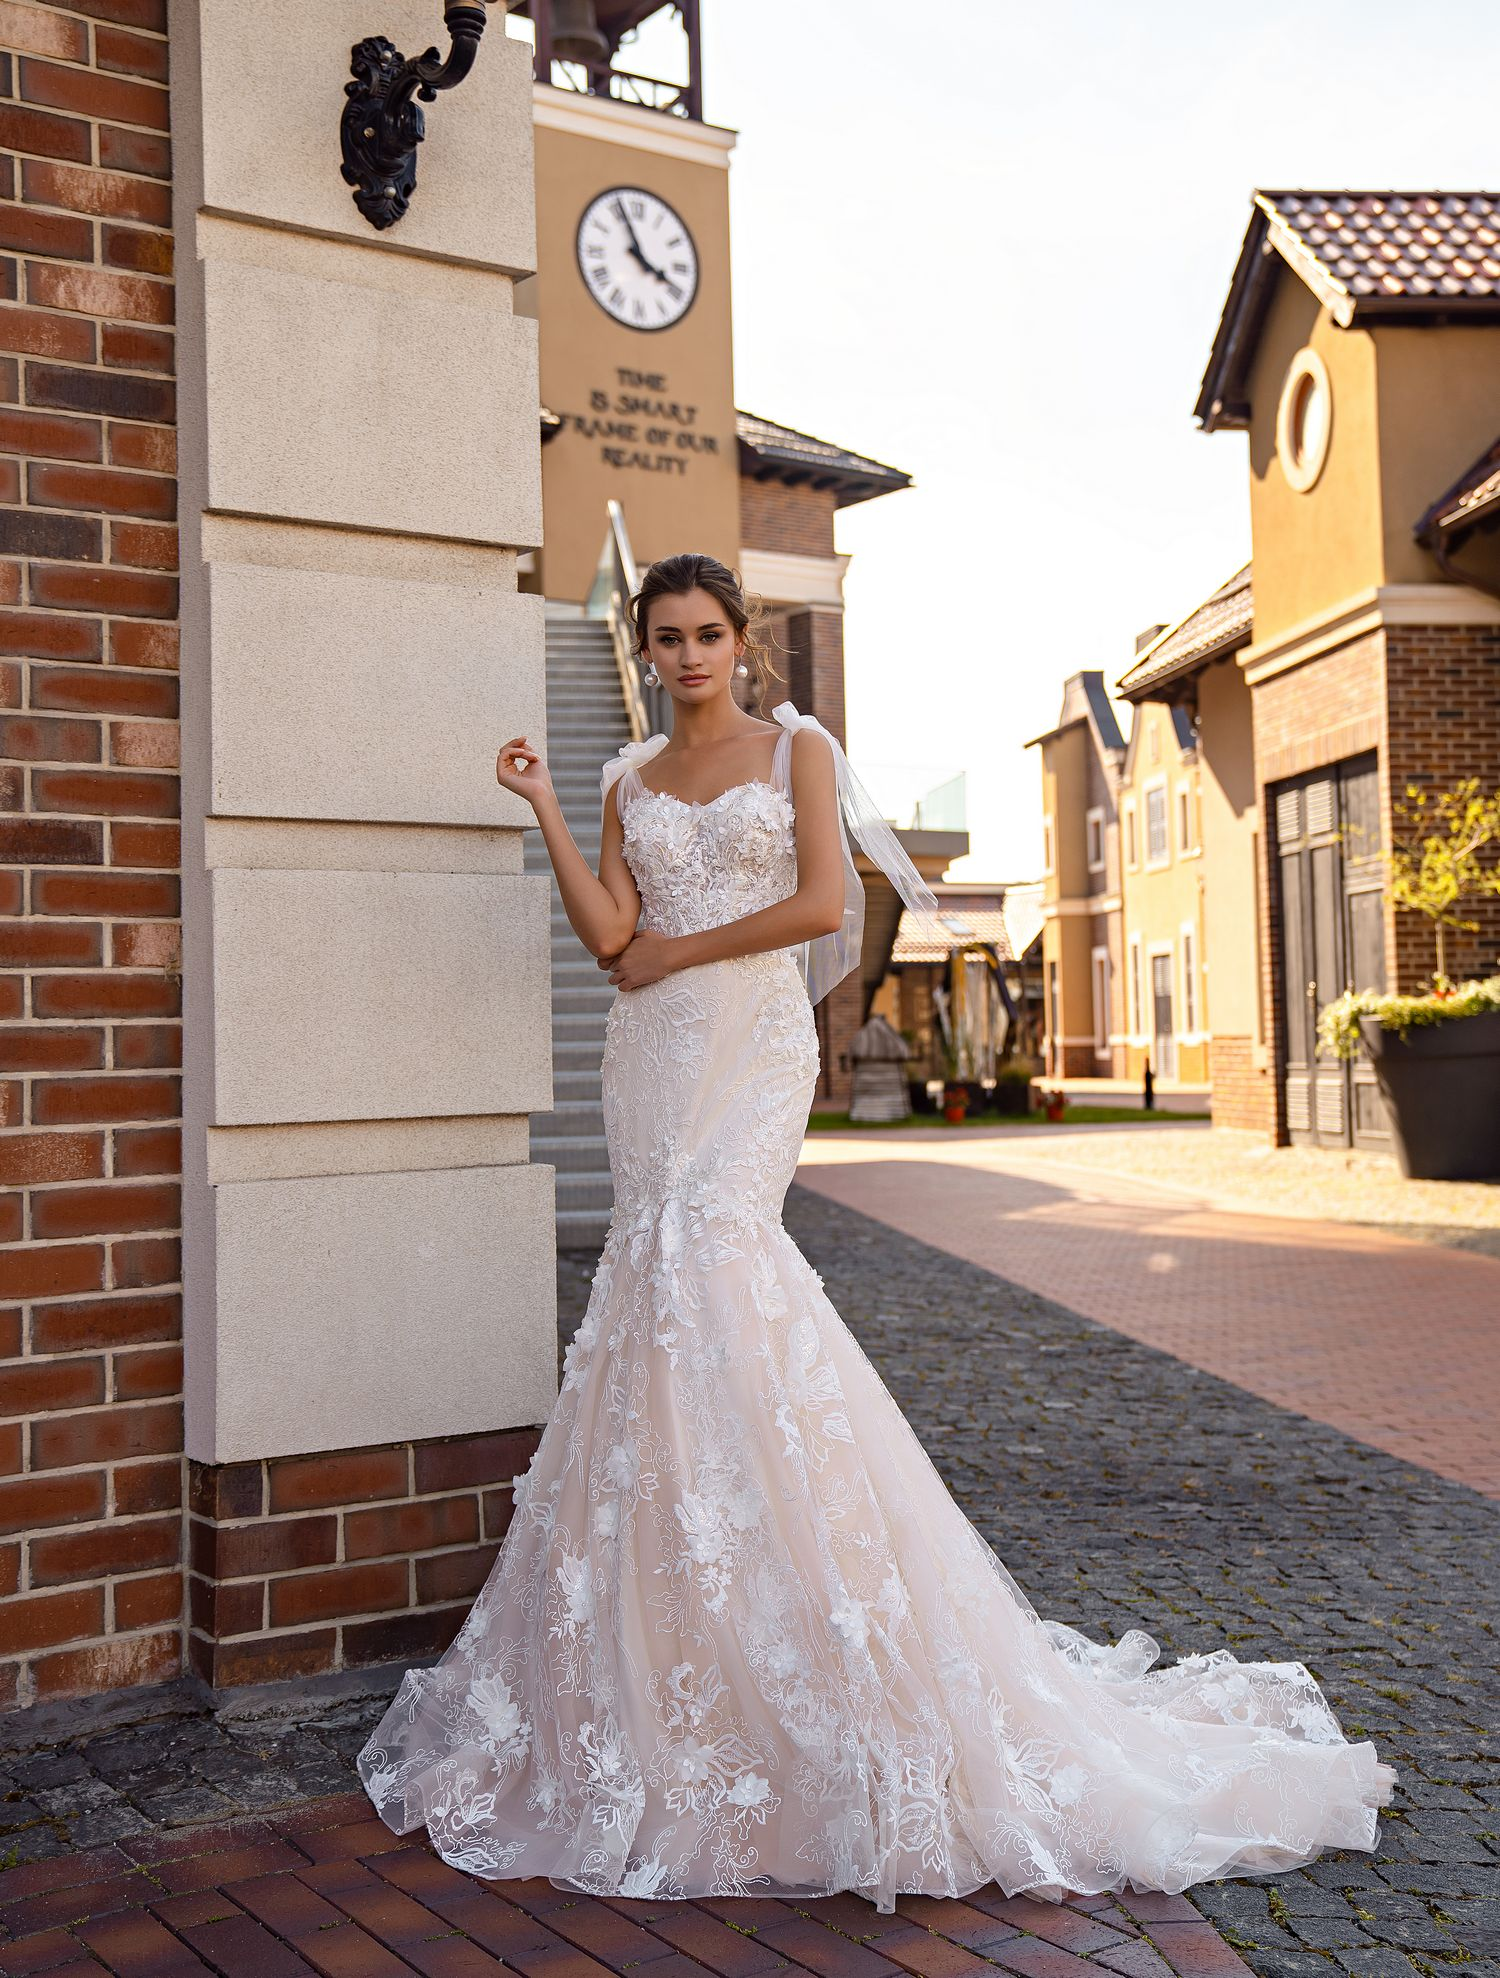 Wedding dress fishtail on ties-bows from Supernova-1